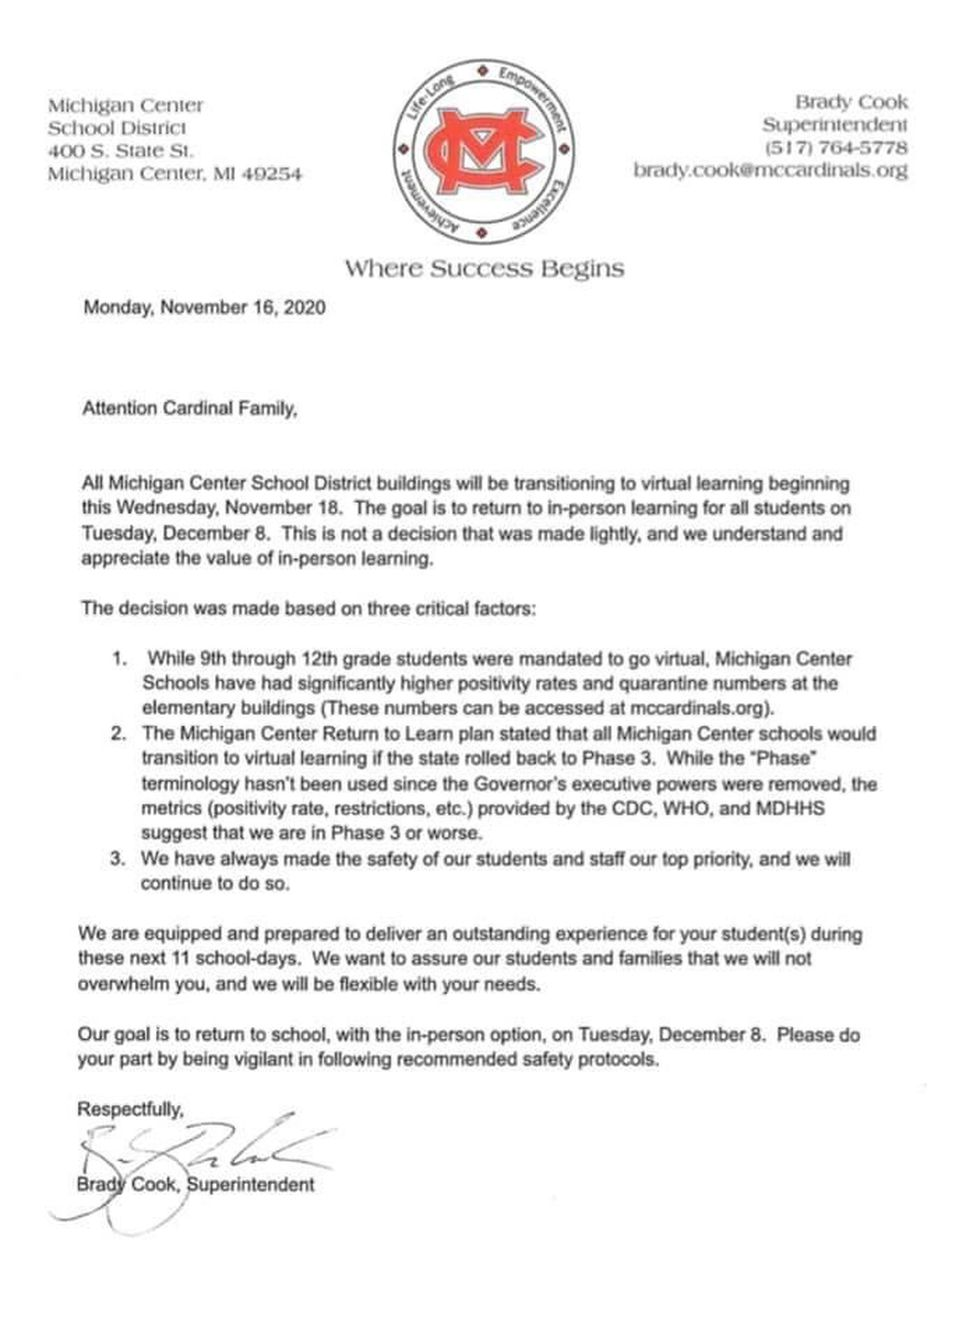 Michigan Center provides official letter.